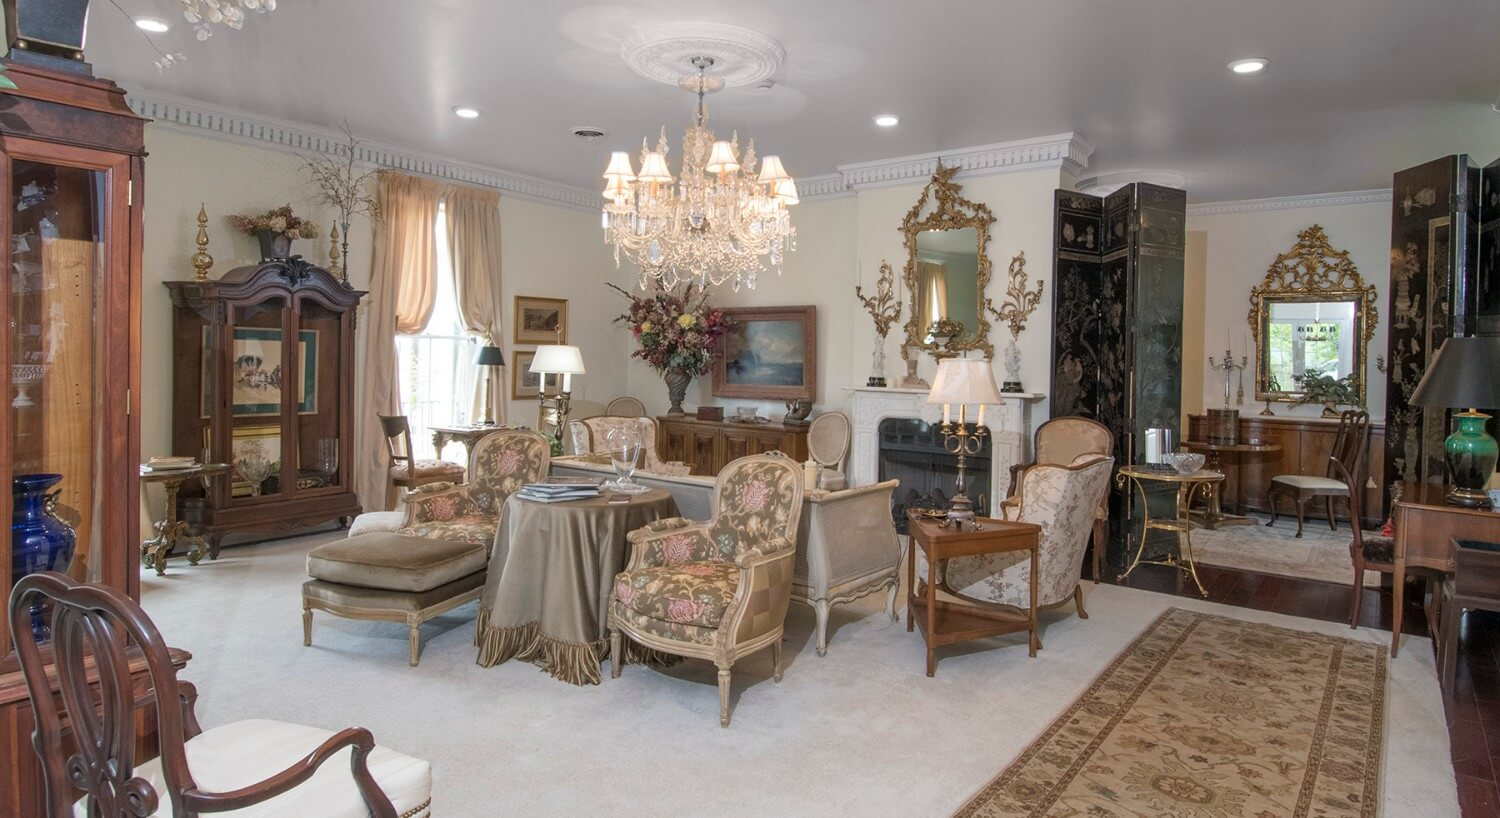 Lavish sitting area with elegant antique furniture, wingback chairs and a fireplace.